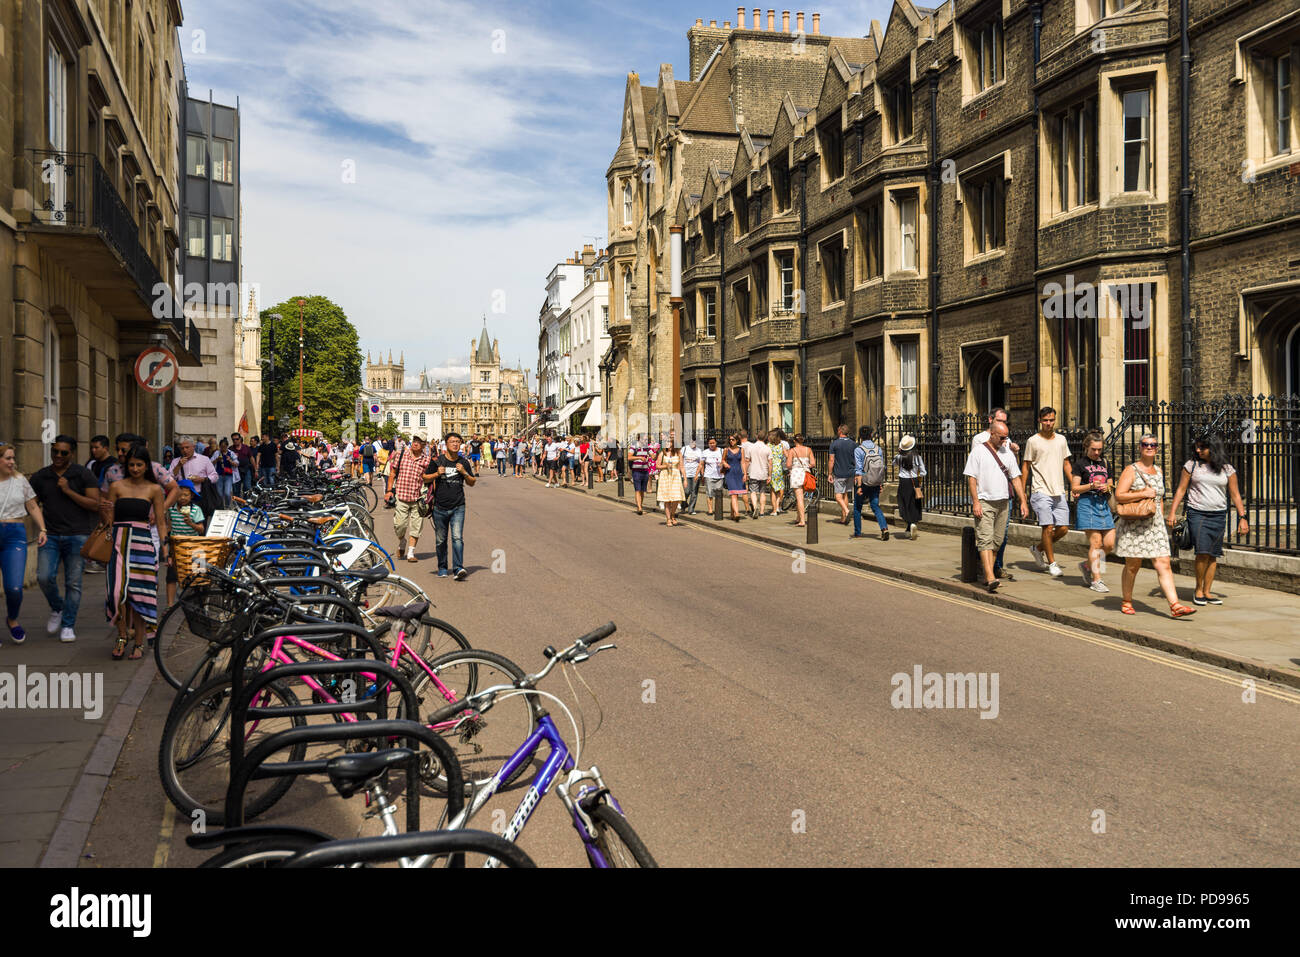 Trumpington street with pedestrians and view towards Kings Parade and Gonville and Caius College, Cambridge, UK Stock Photo